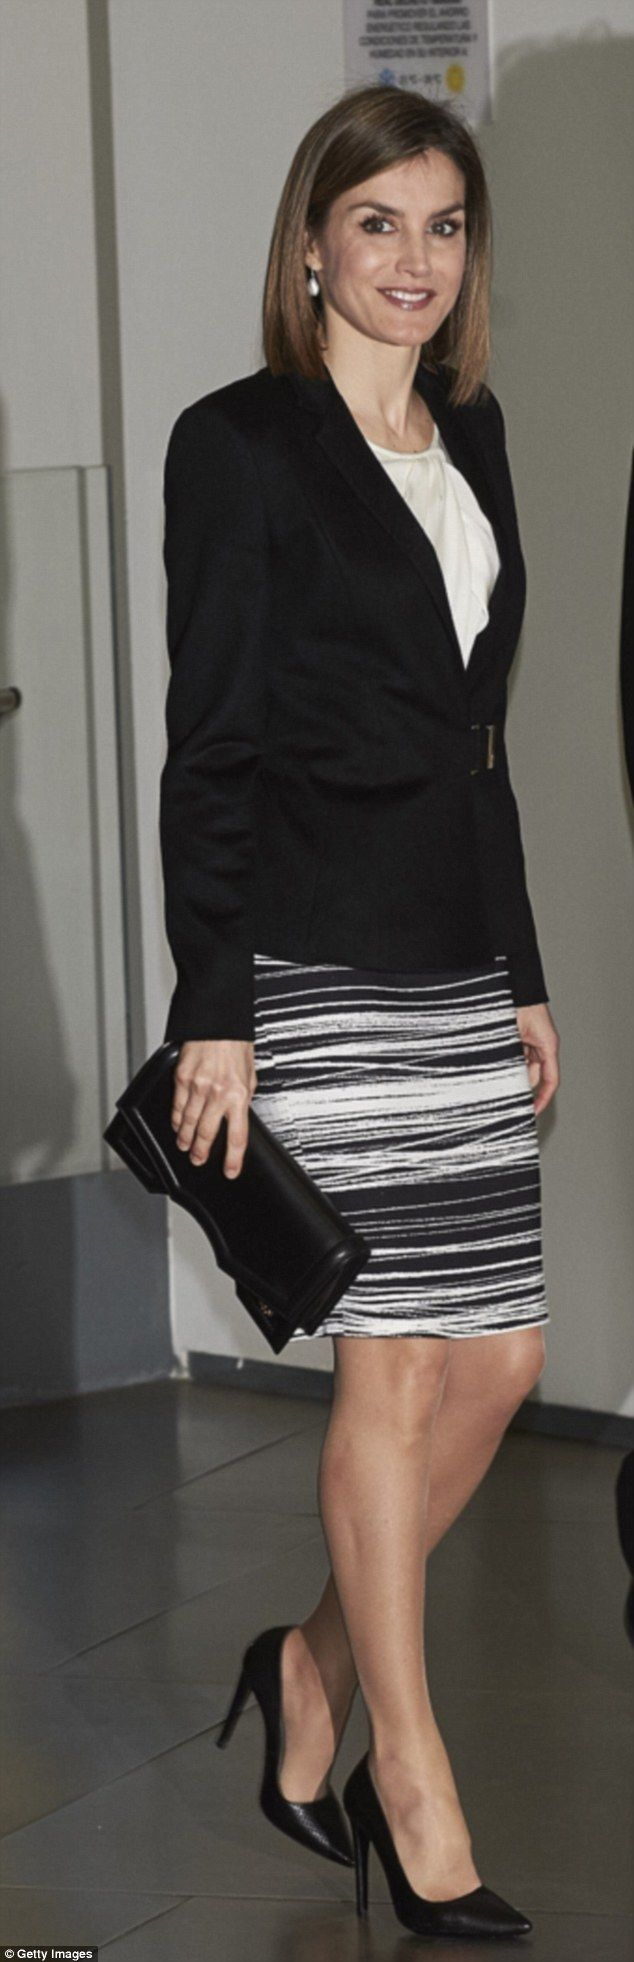 In February 2016 Letizia recycled the oufit for the fourth time while attending the Forum ...